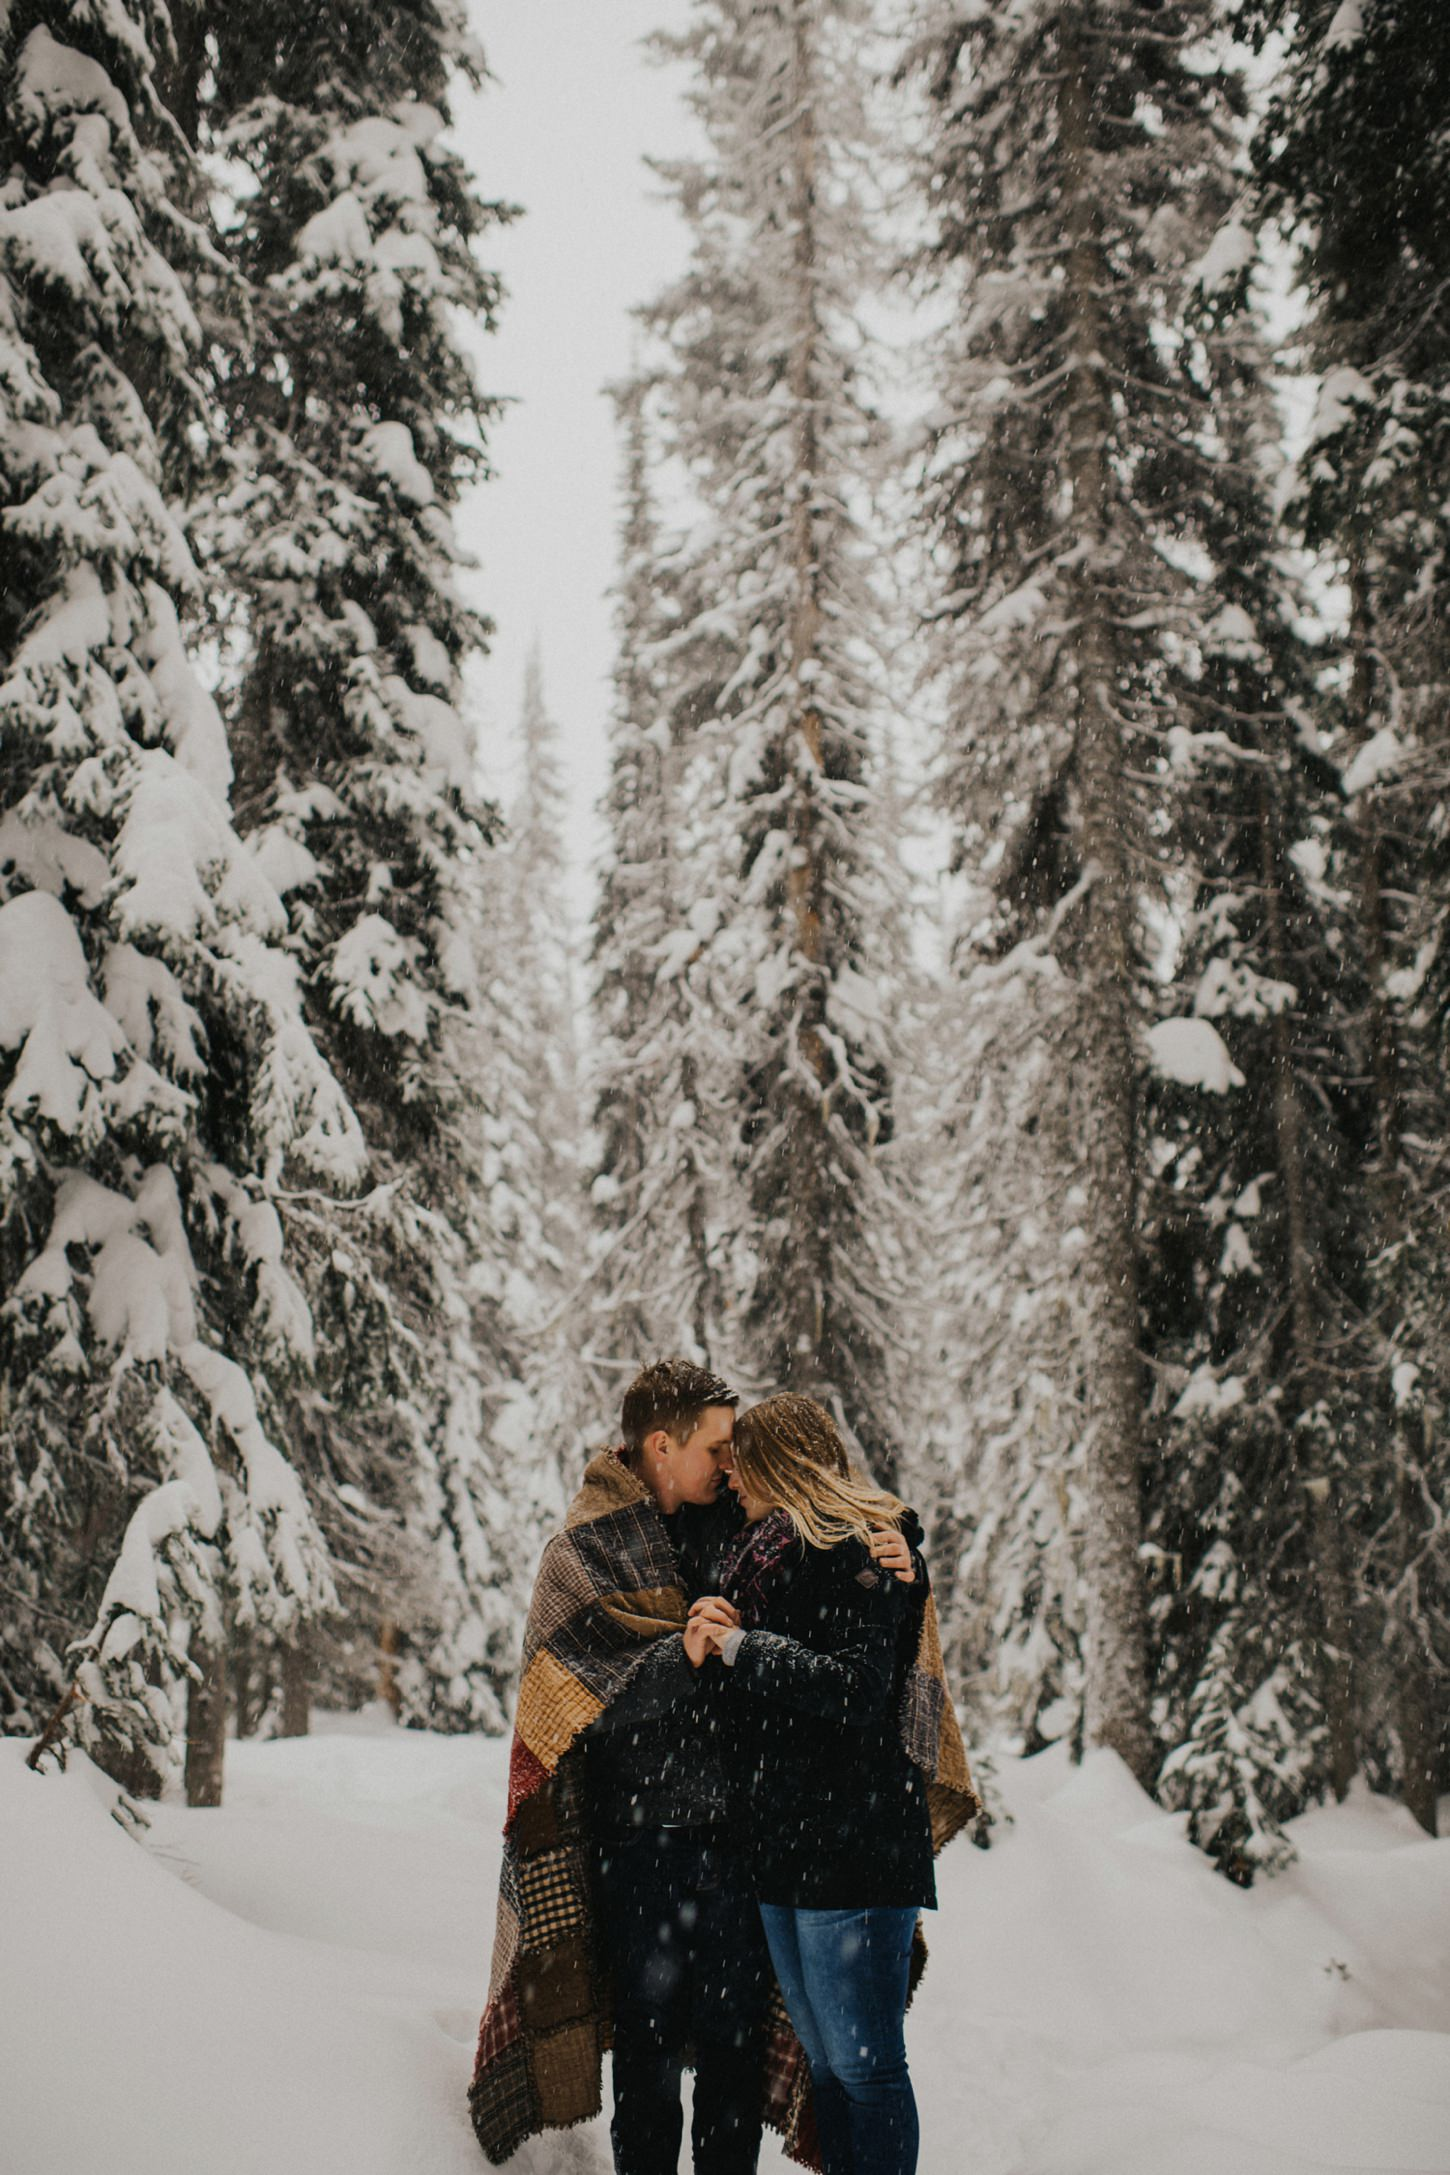 Big White Mountain Engagement Photography